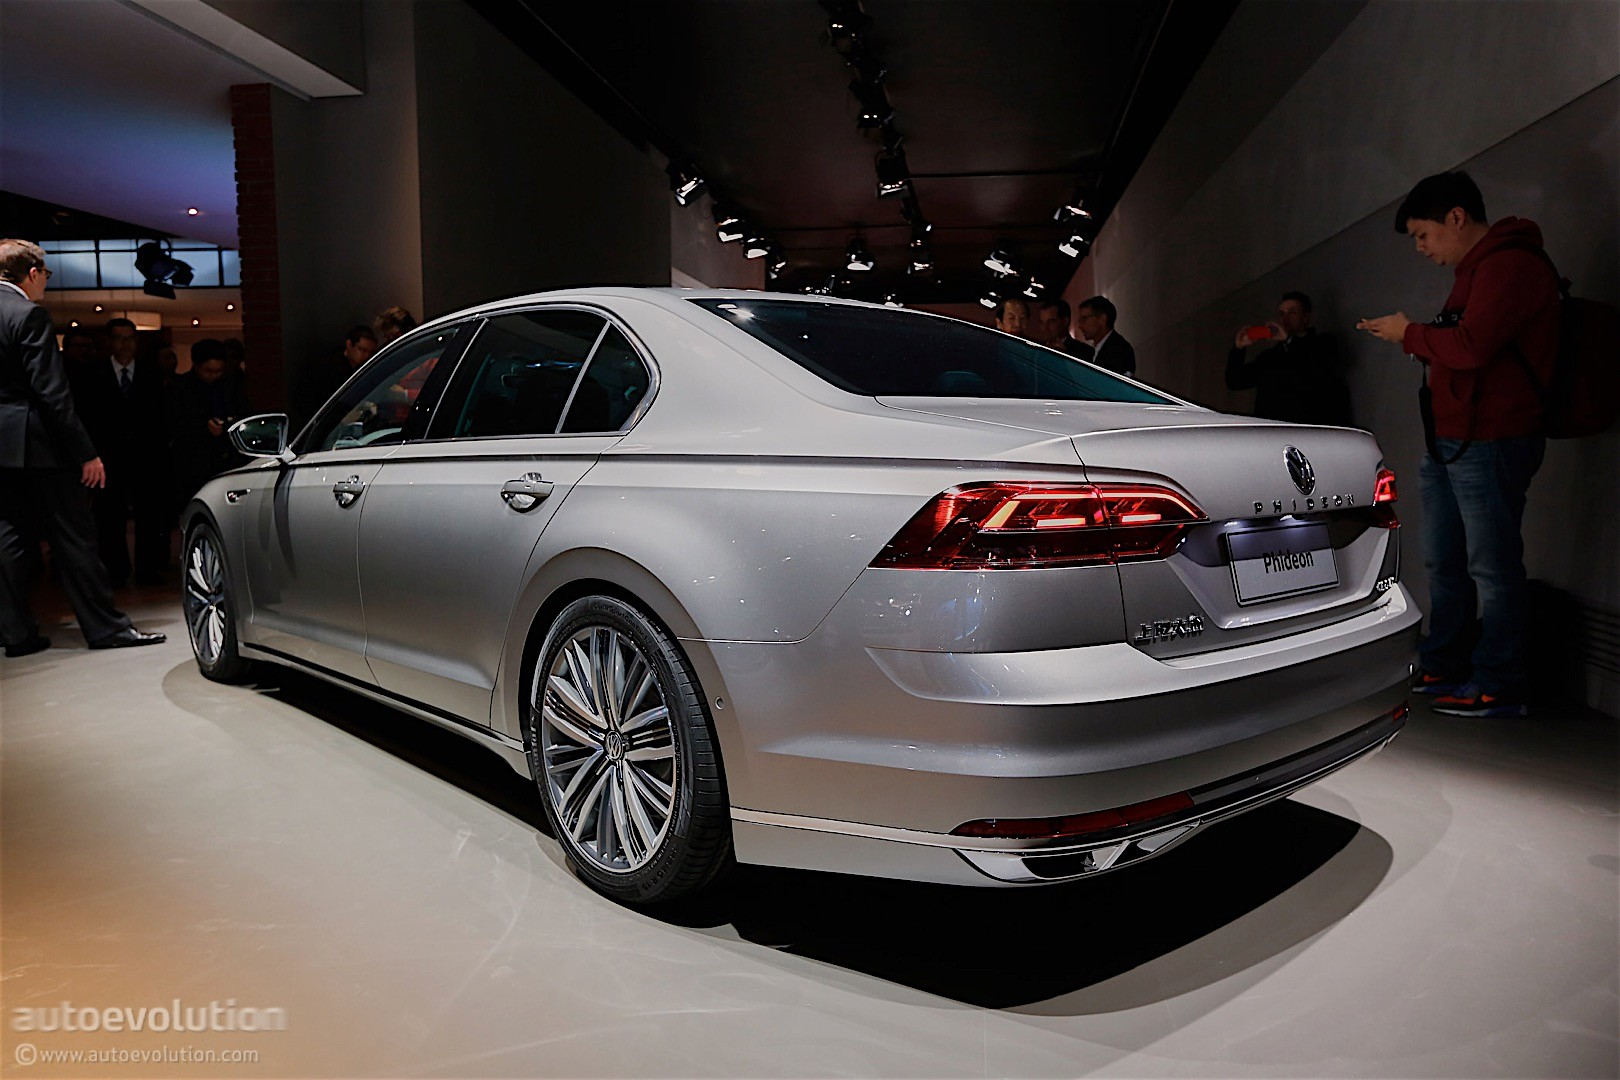 2016 Volkswagen Phideon Revealed to Europeans, Will Be Sold in China - autoevolution